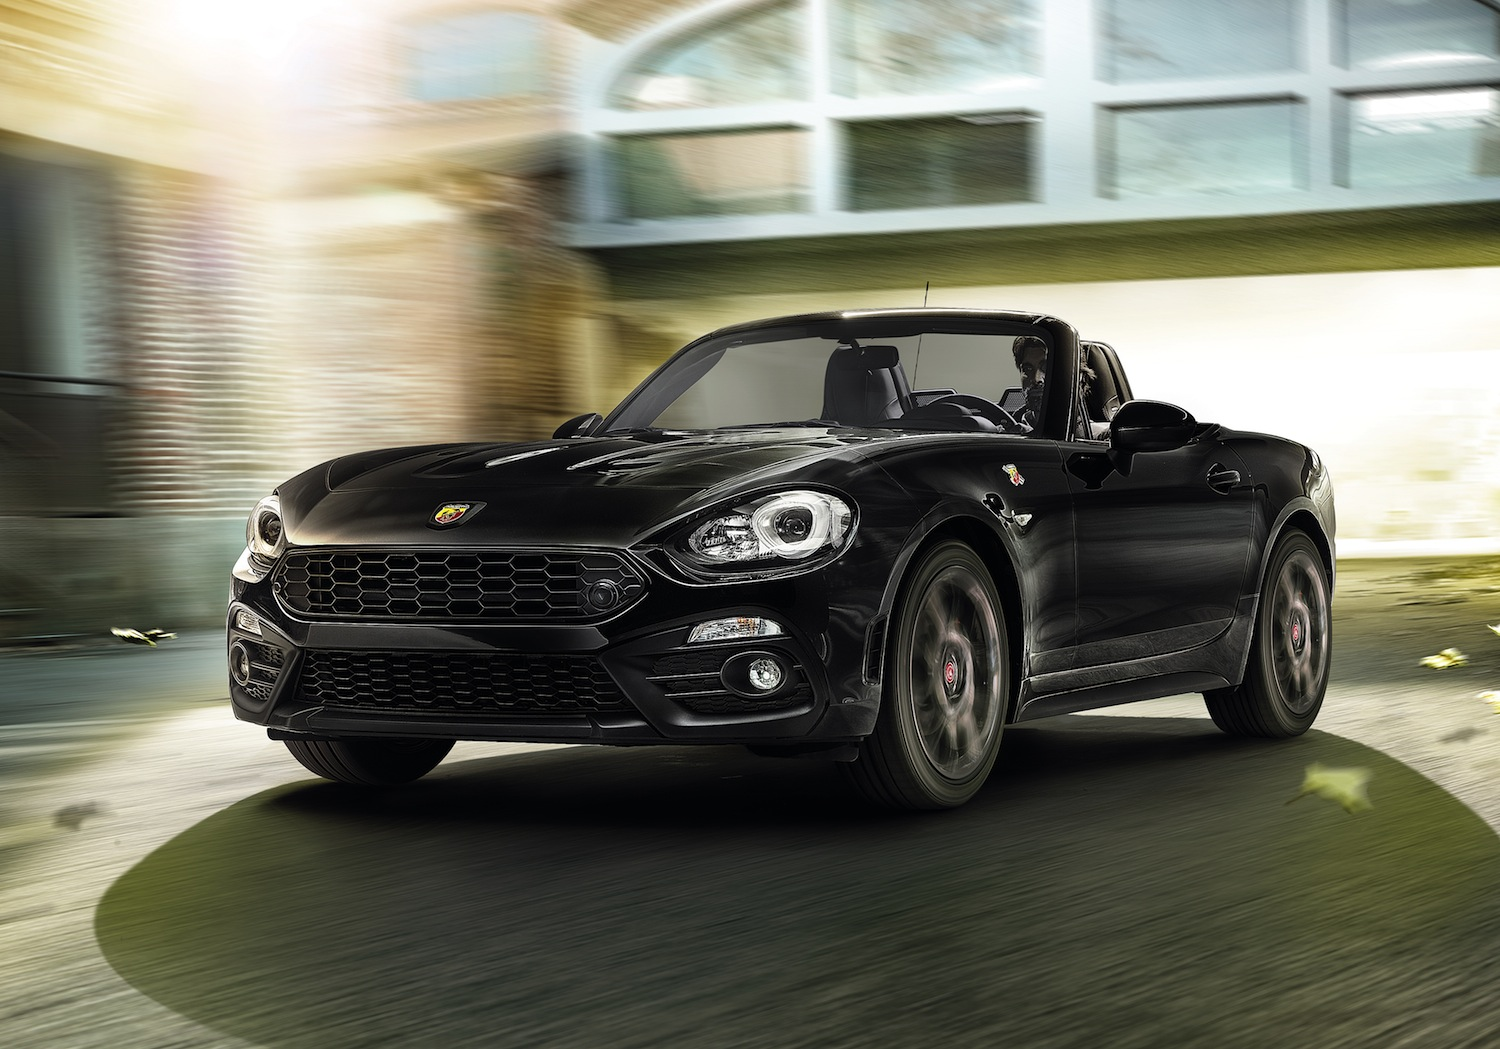 nouvelle abarth 124 spider scorpione gen ve. Black Bedroom Furniture Sets. Home Design Ideas